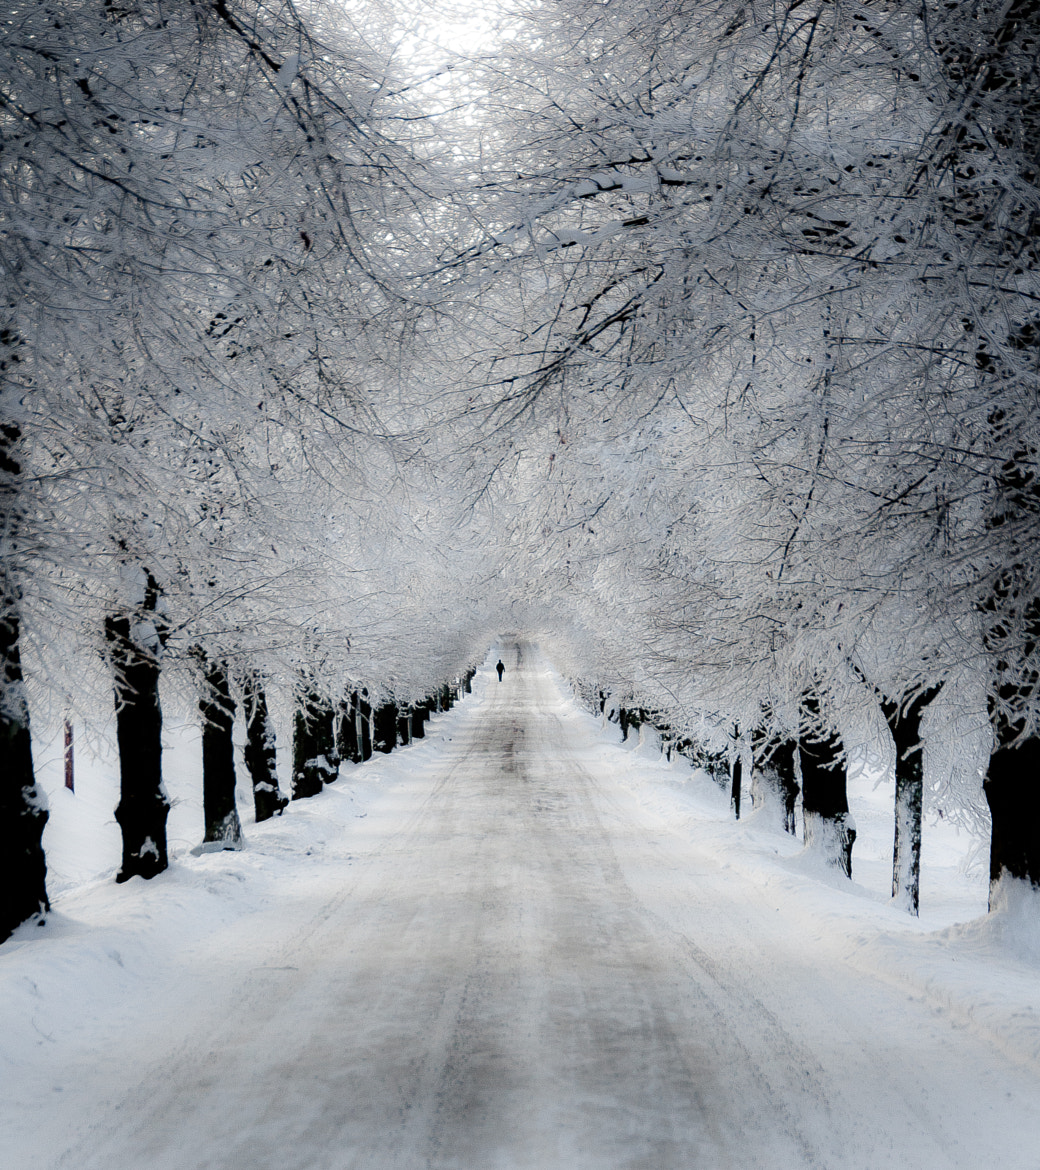 Photograph A Winter Scene by Hector Melo A. on 500px